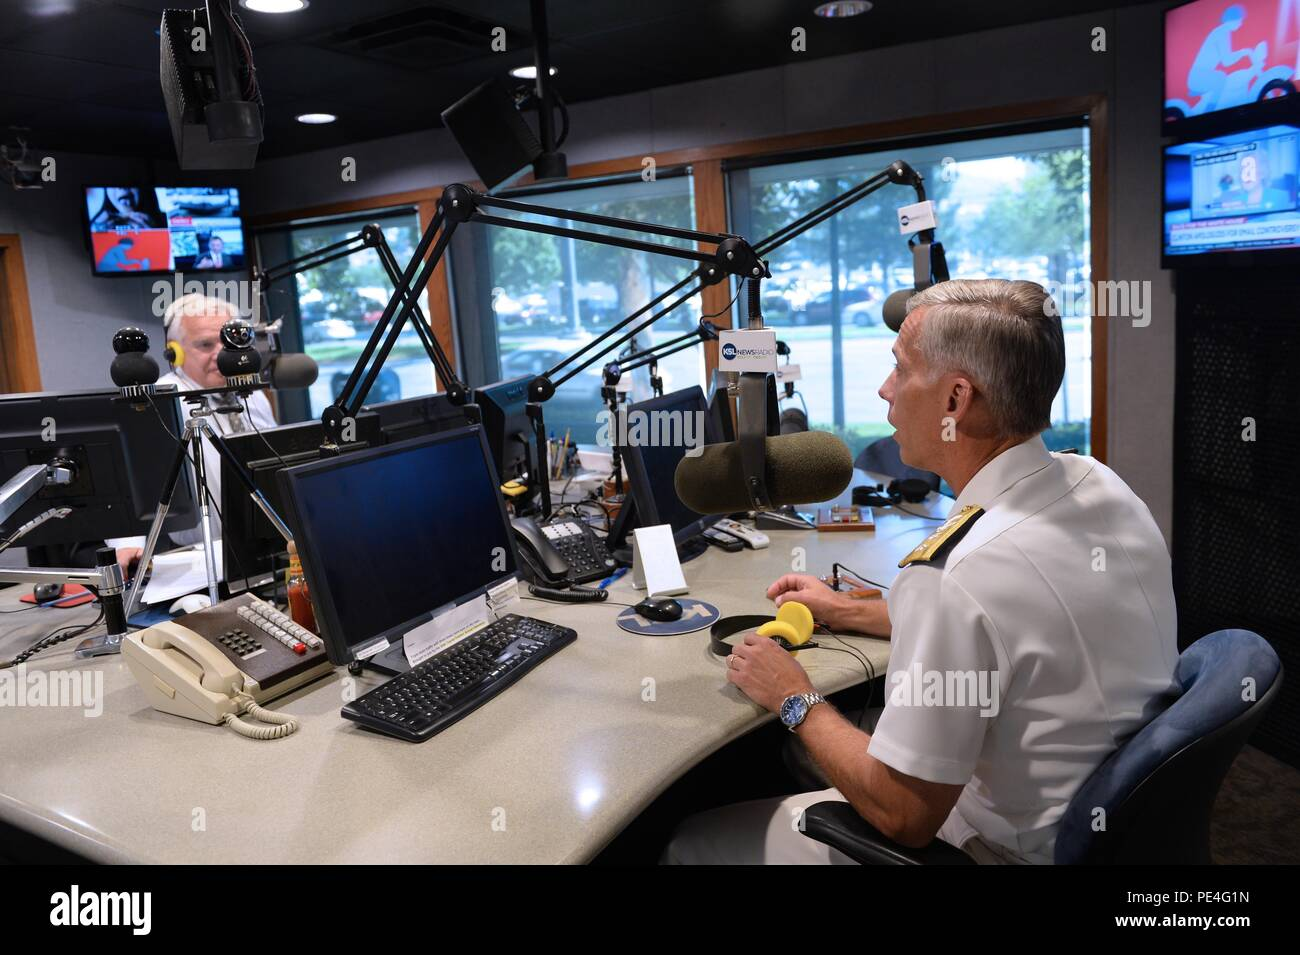 150909-N-RX128-017 SALT LAKE CITY, Utah (Sept. 9, 2015) – RADM Rick Snyder talks to Doug Wright during an interview on the Doug Wright radio show that airs in Salt Lake City. This event is part of the Salt Lake City Navy Week. (U.S. Navy photo by Mass Communication Specialist 3rd Class Nathan J. Lang) - Stock Image